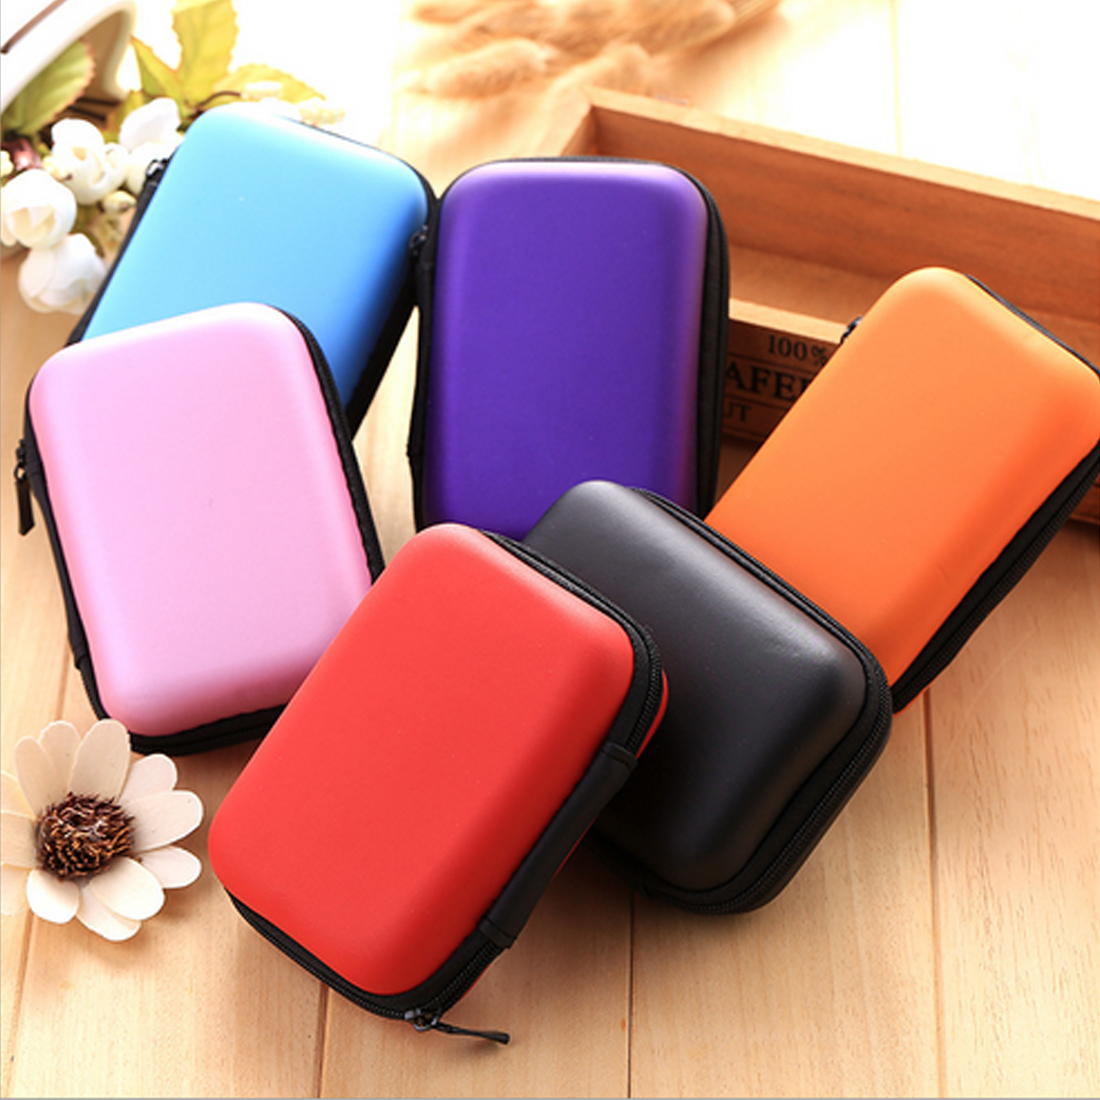 Etmakit Digital 120*80*40mm Storage Cases Portable Accessories Carry Bags For Mobile Phone/Power Bank/Cable/Earphone